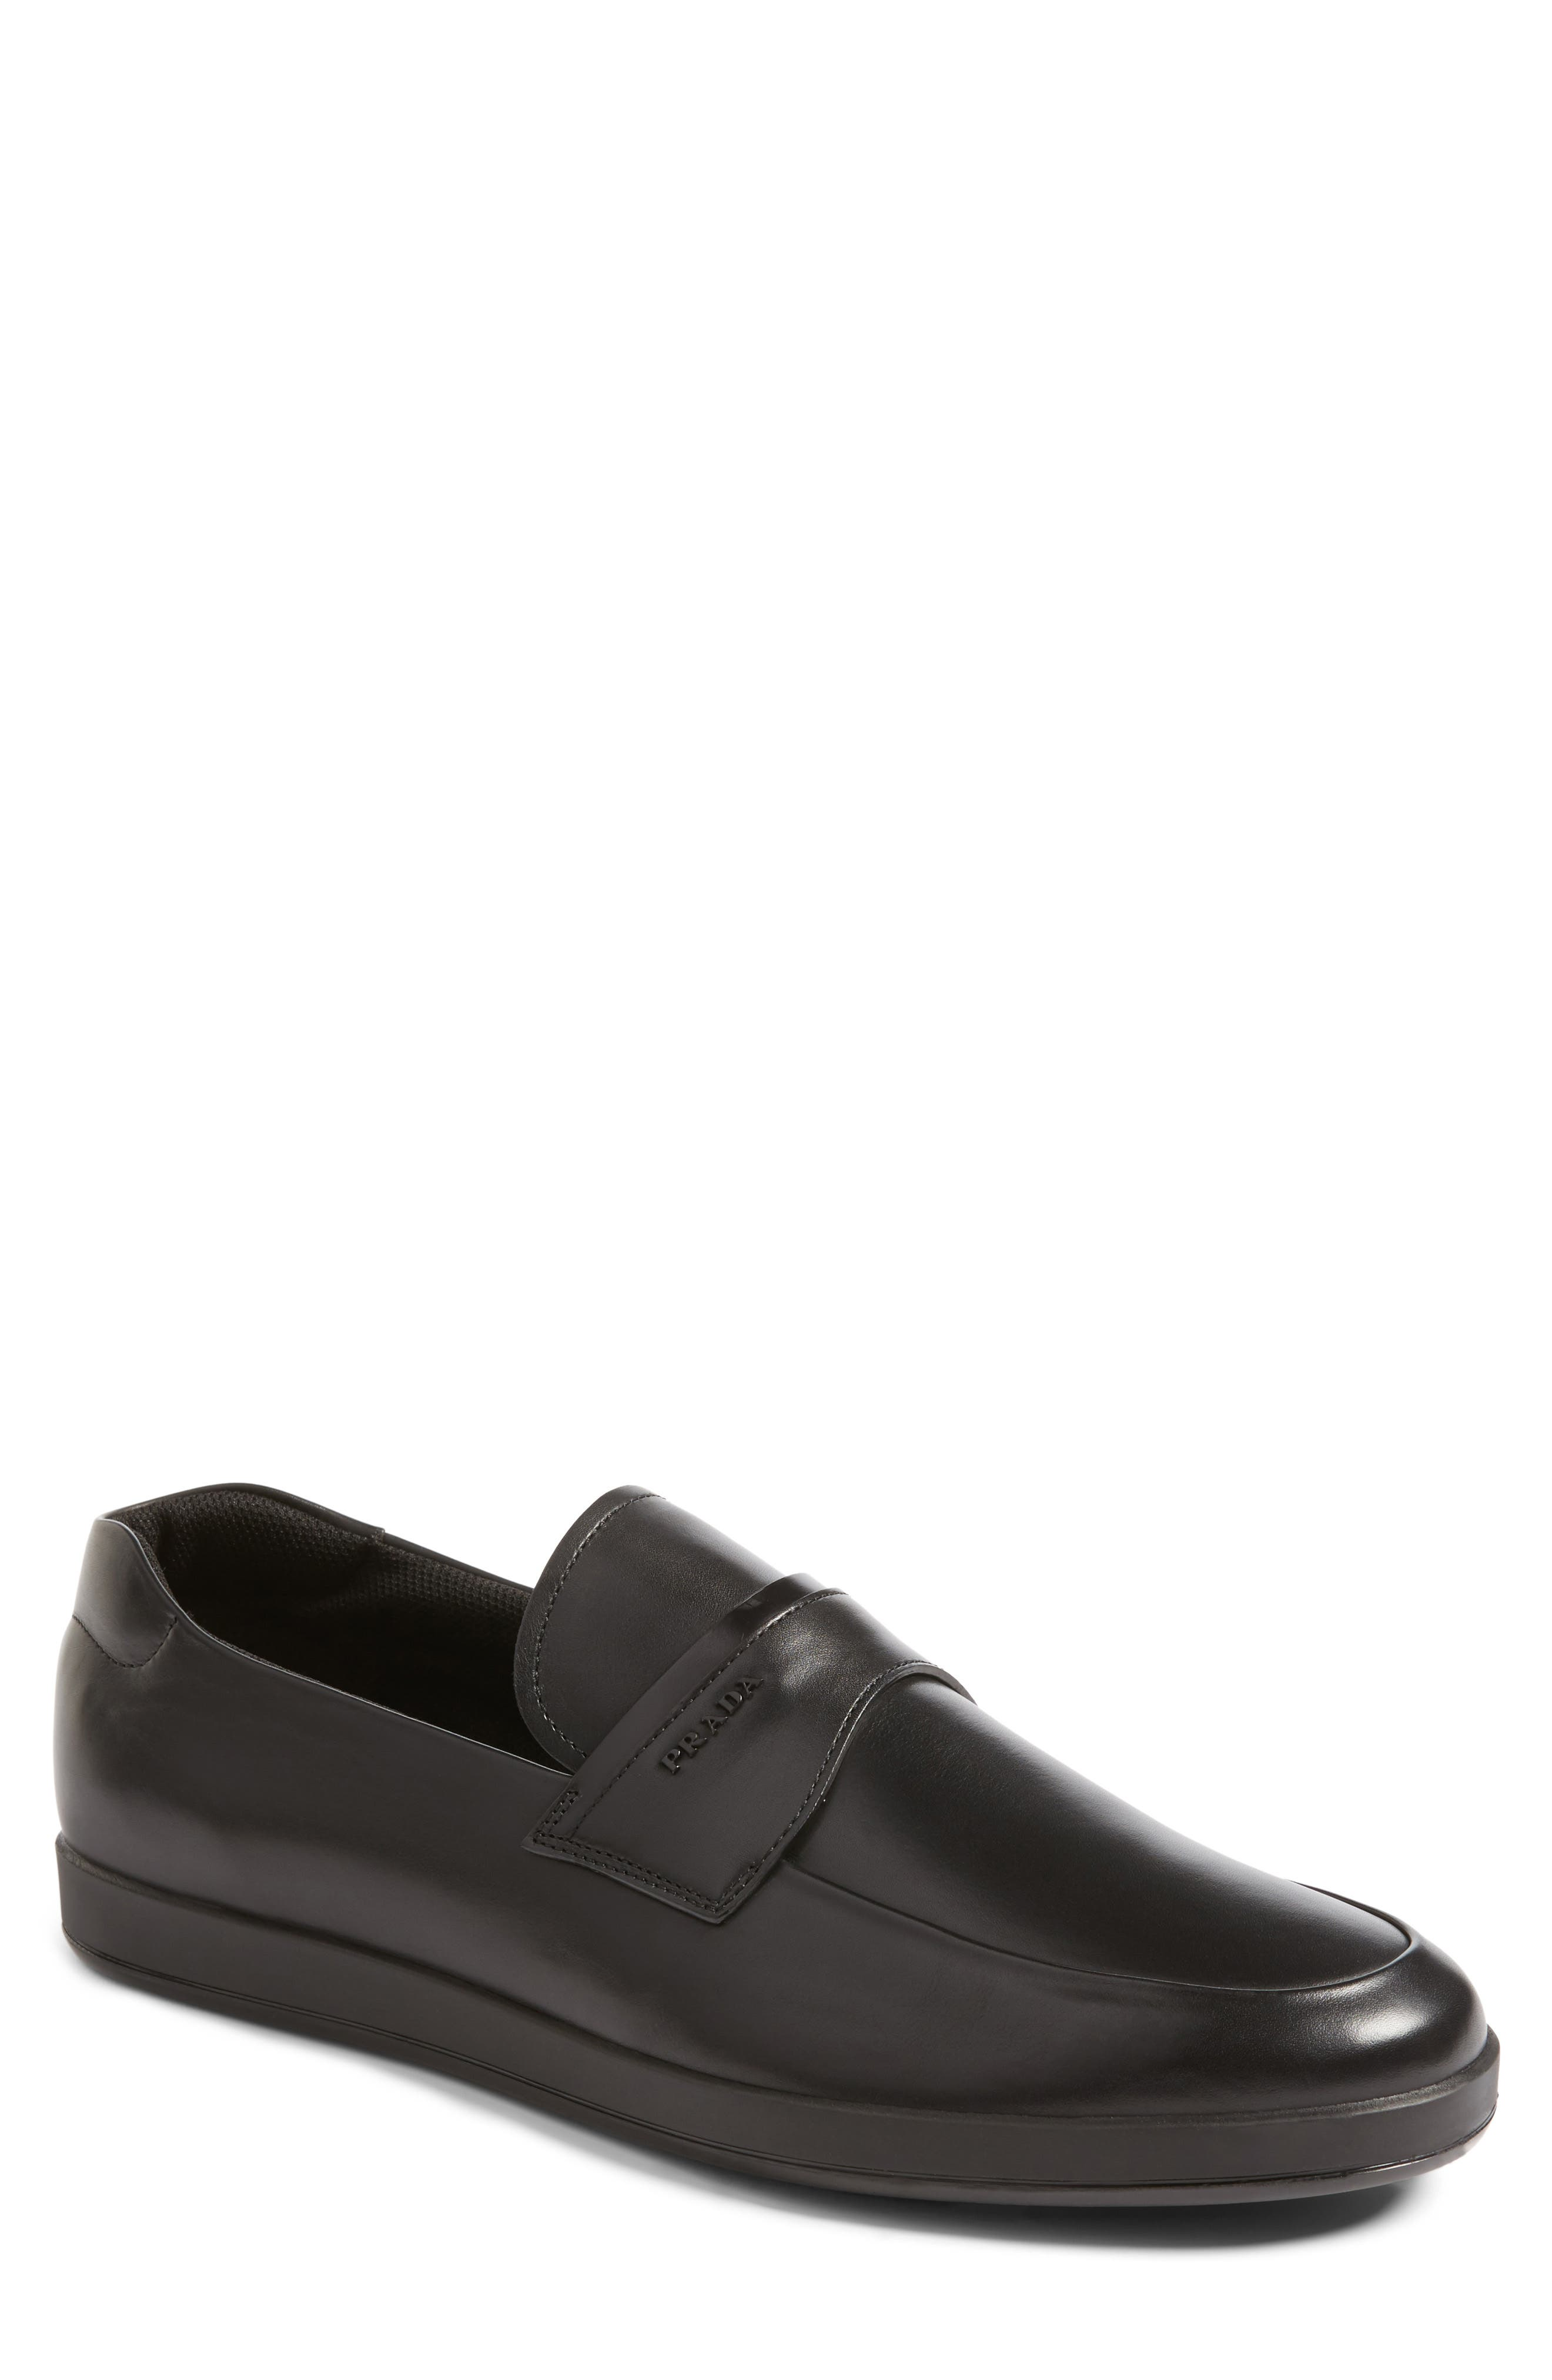 Toblac Penny Loafer, Main, color, 001